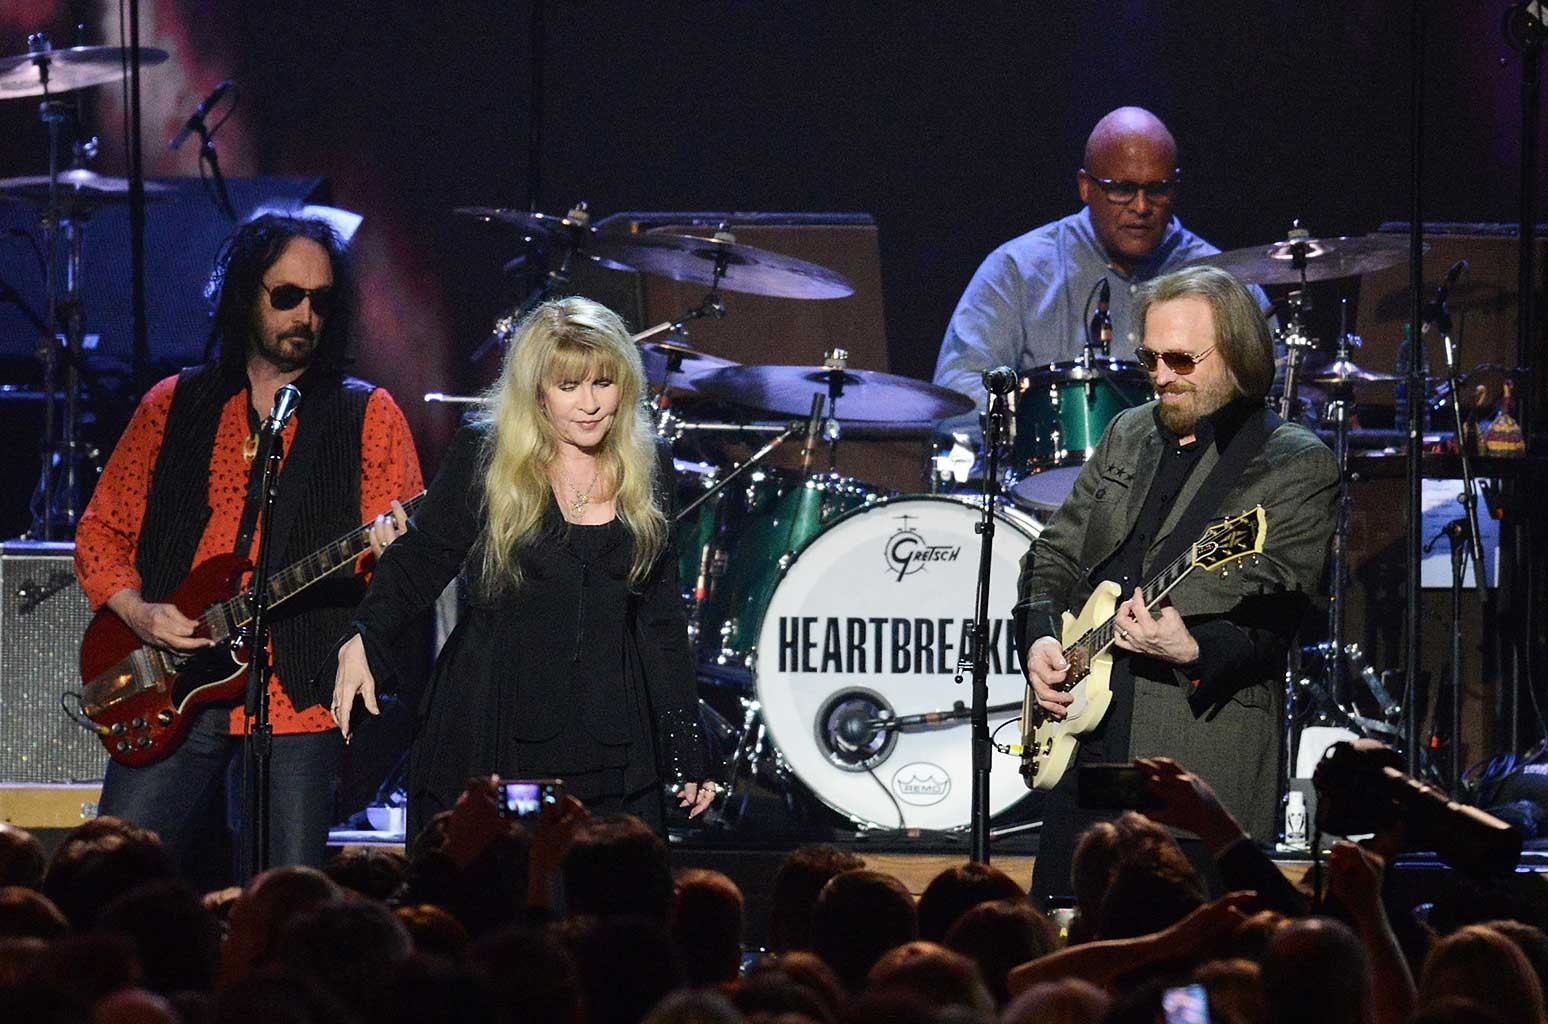 Stevie Nicks, Mike Campbell, Steve Ferrone and Tom Petty perform onstage during the MusiCares Person of the Year event on Feb. 10, 2017 in Los Angeles.